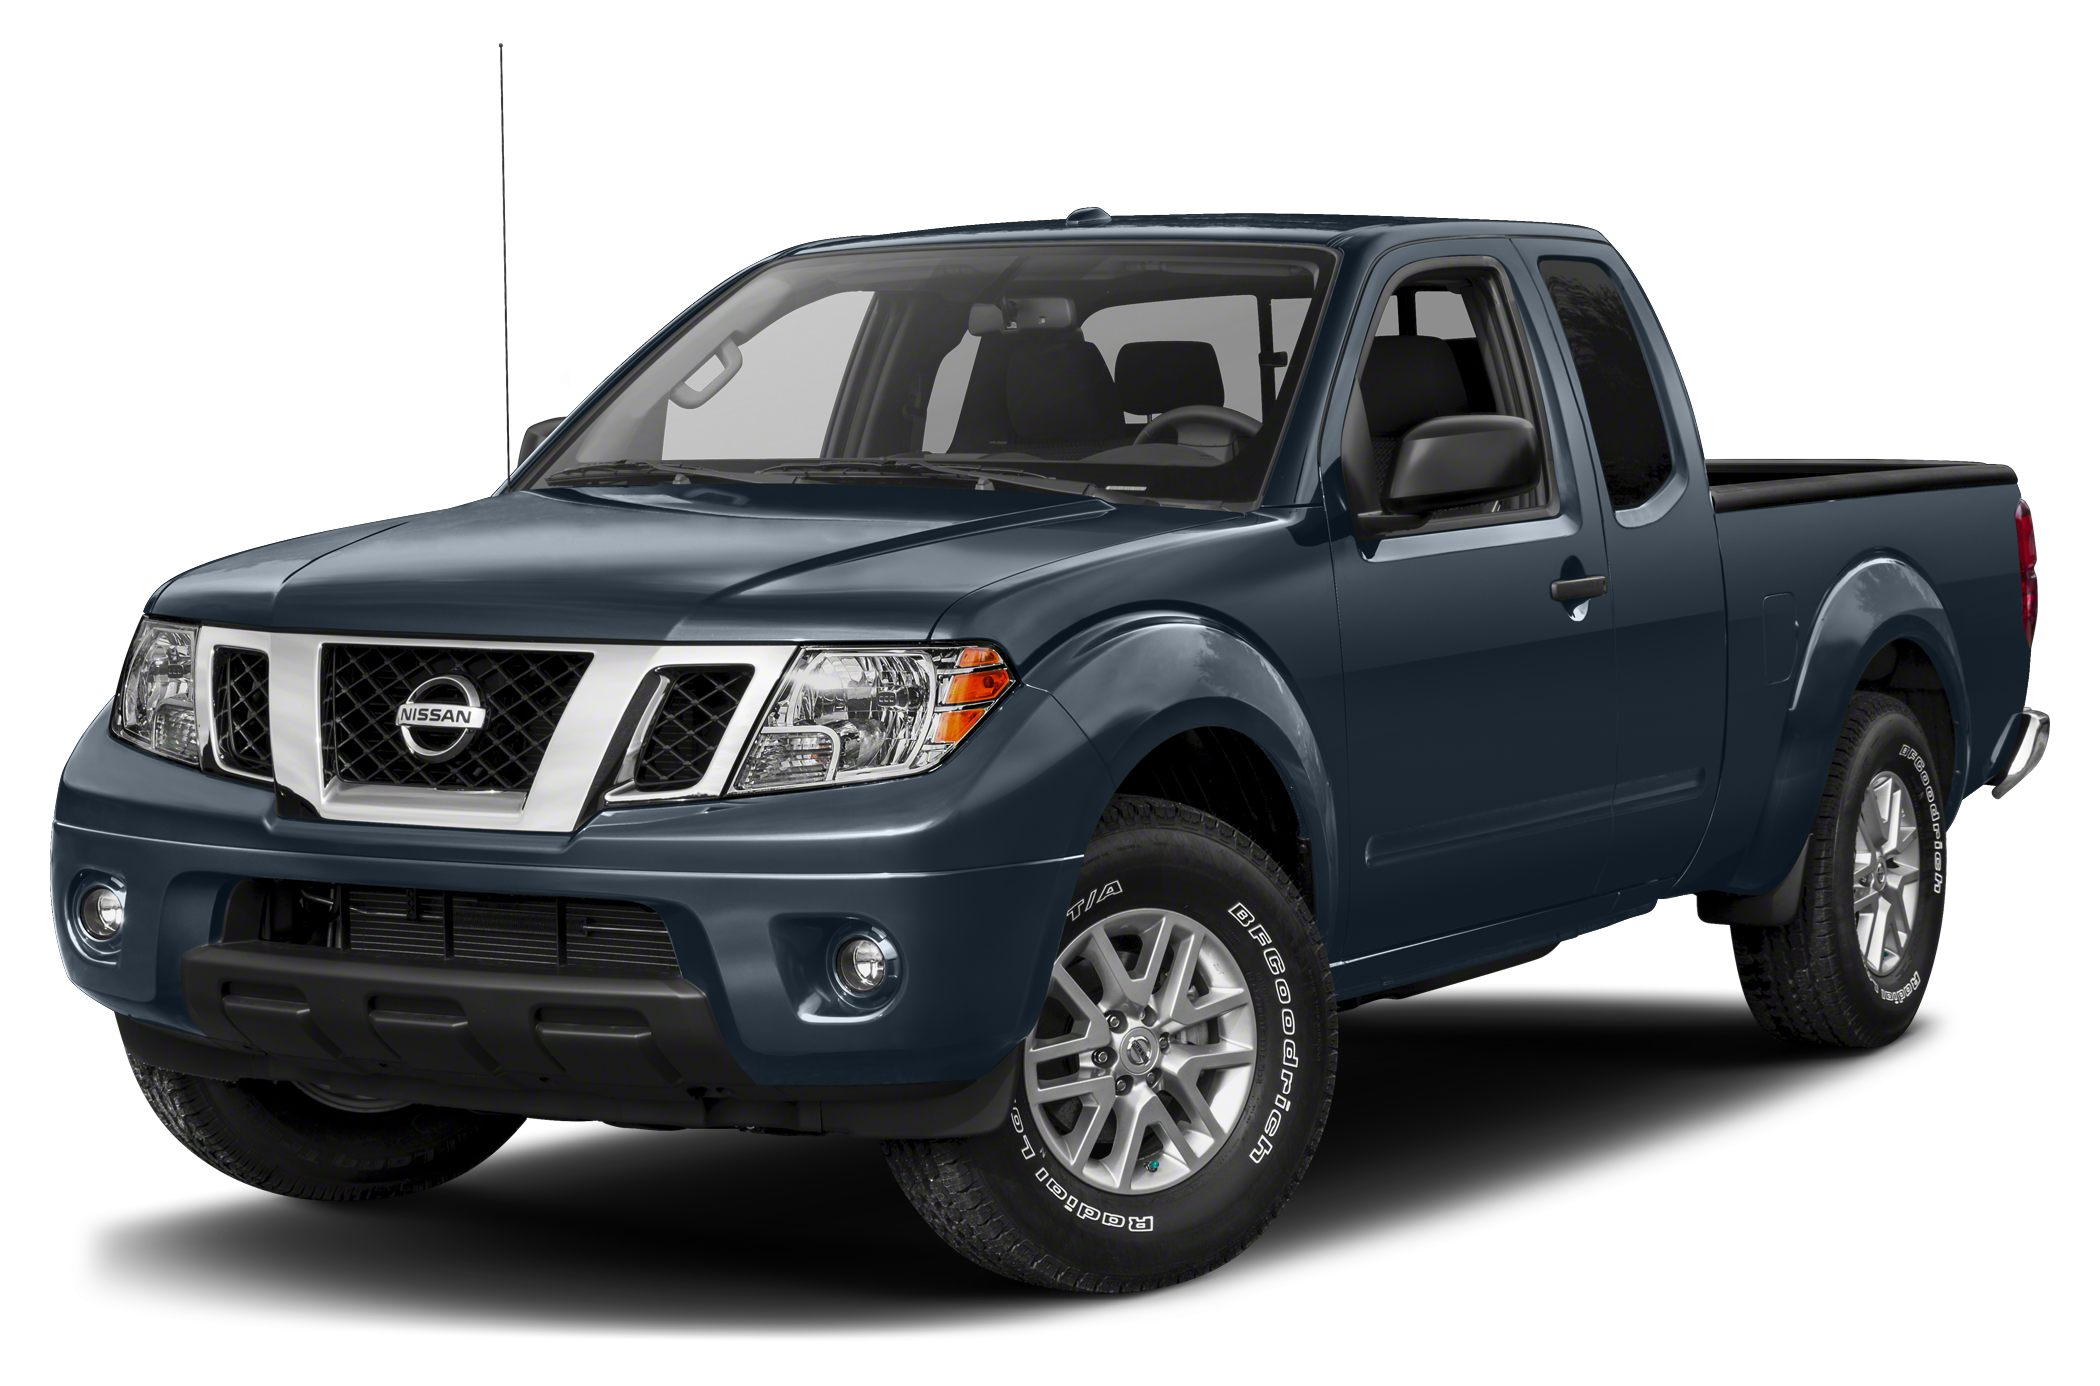 2015 Nissan Frontier SV-I4 Extended Cab Pickup for sale in Houston for $23,301 with 42 miles